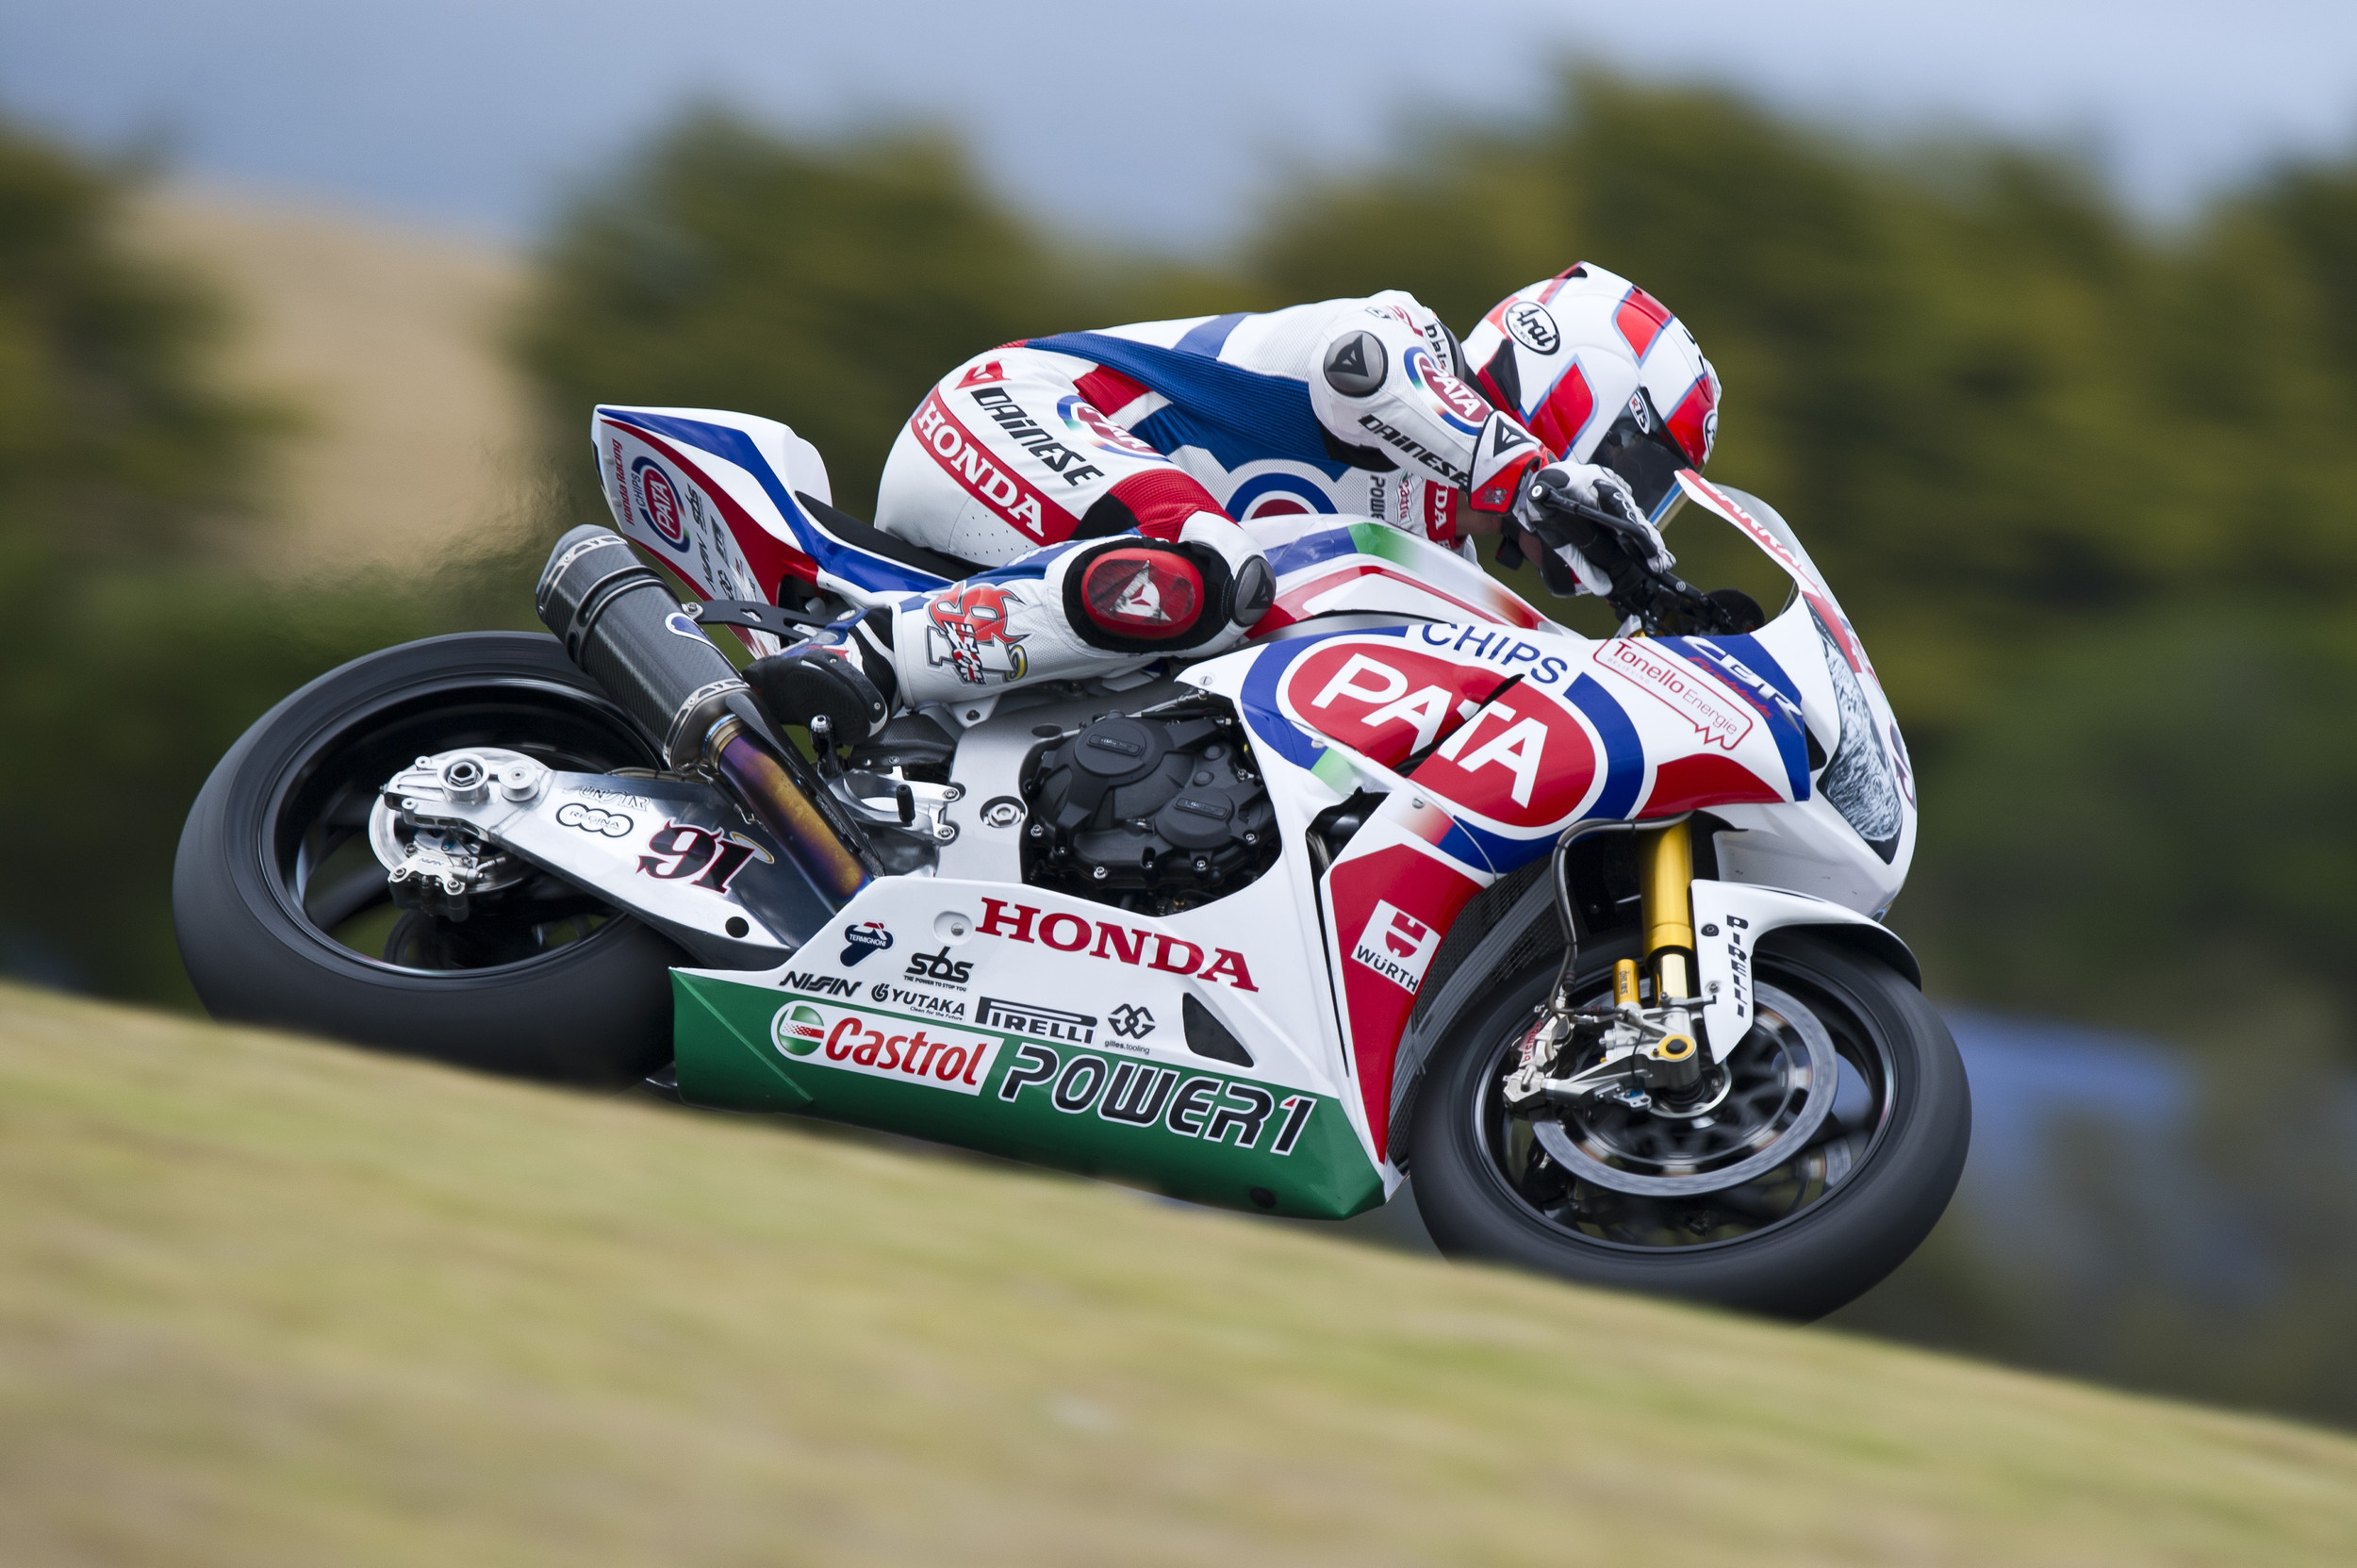 """Leon Haslam - P9 1m31.138s - """"It's a little disappointing after feeling really confident after the test here earlier this week. We put in a new specification engine yesterday, which is more powerful and a bit more aggressive. It's thrown a few little bugs into our plans and we've only been able to make a few steps back towards where we were in the test. I'd say we're around 50% of the way there and we made some more progress in those two Superpole outings. But, as I say, it's a little disappointing because in the test I was feeling really confident. On the positive side, we can see where the issues are and we just need to study the electronics to get them sorted. The chassis settings and tyres are exactly the same as we ran in the test and, apart from one or two other niggling little problems, I'm happy with all that."""""""